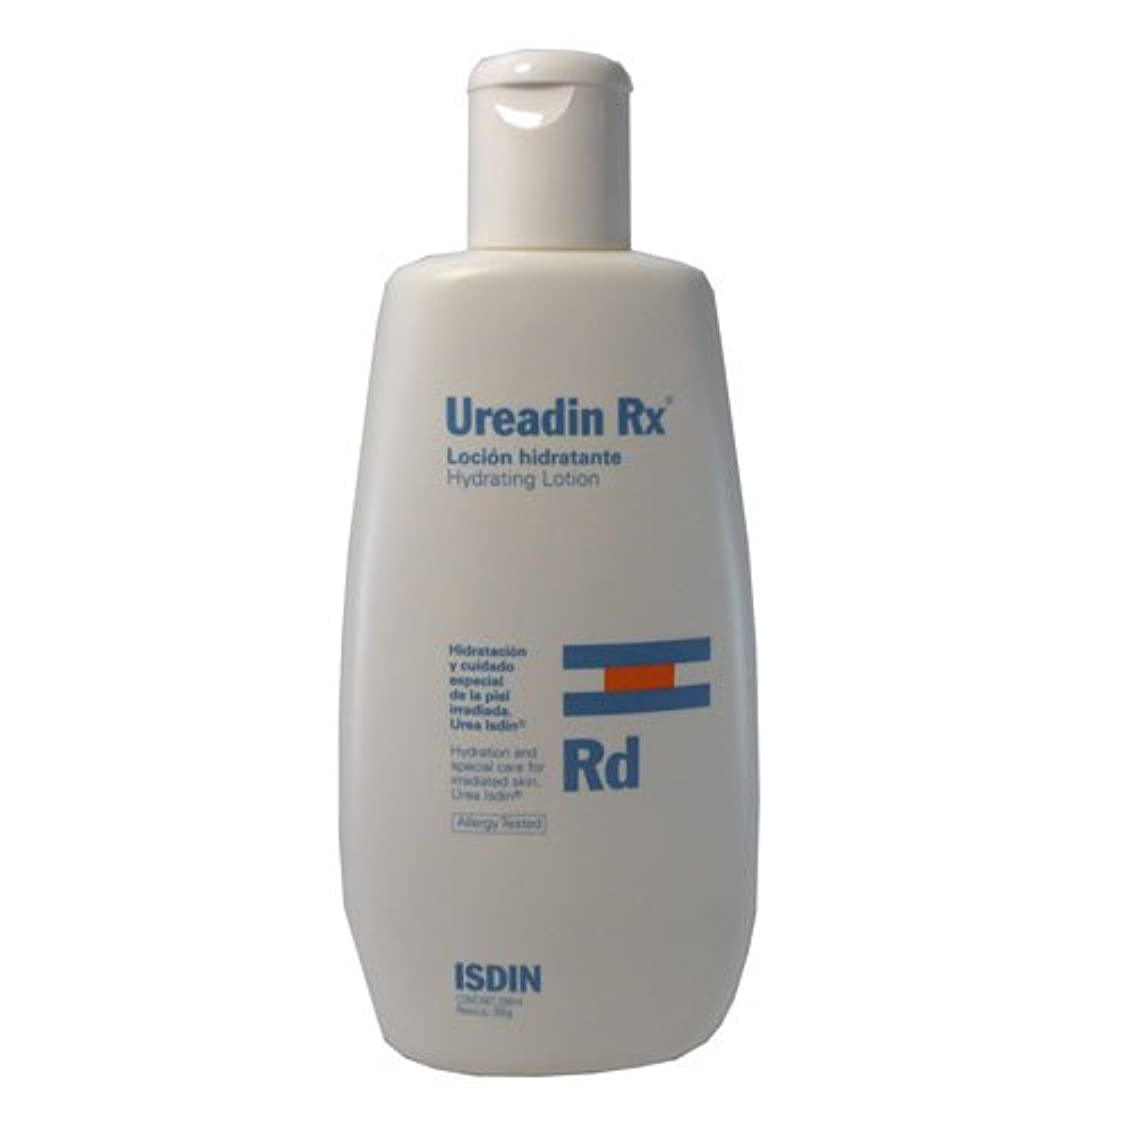 Isdin Ureadin Rx Hydrating Lotion 250ml [並行輸入品]